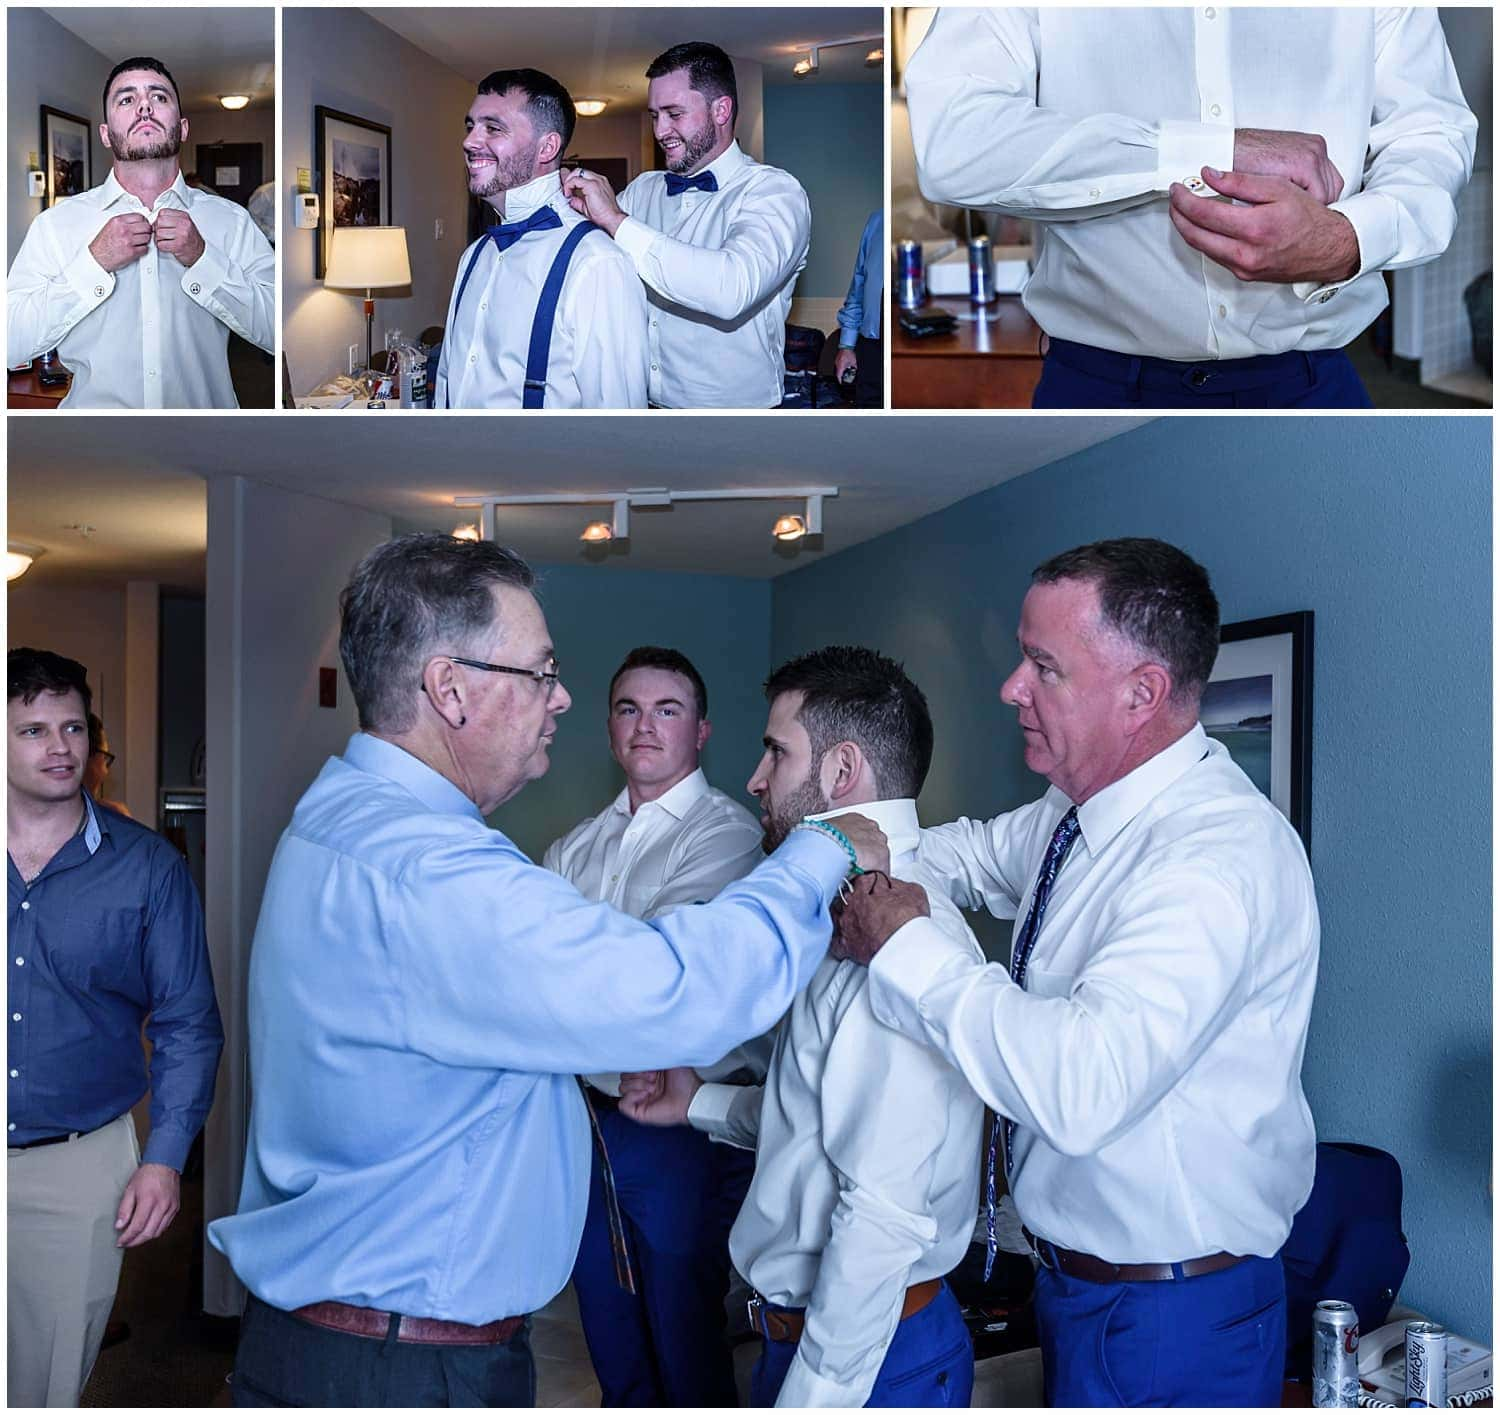 The groom getting ready for his wedding day with family and groomsmen at the Super 8 hotel in Windsor, NS.